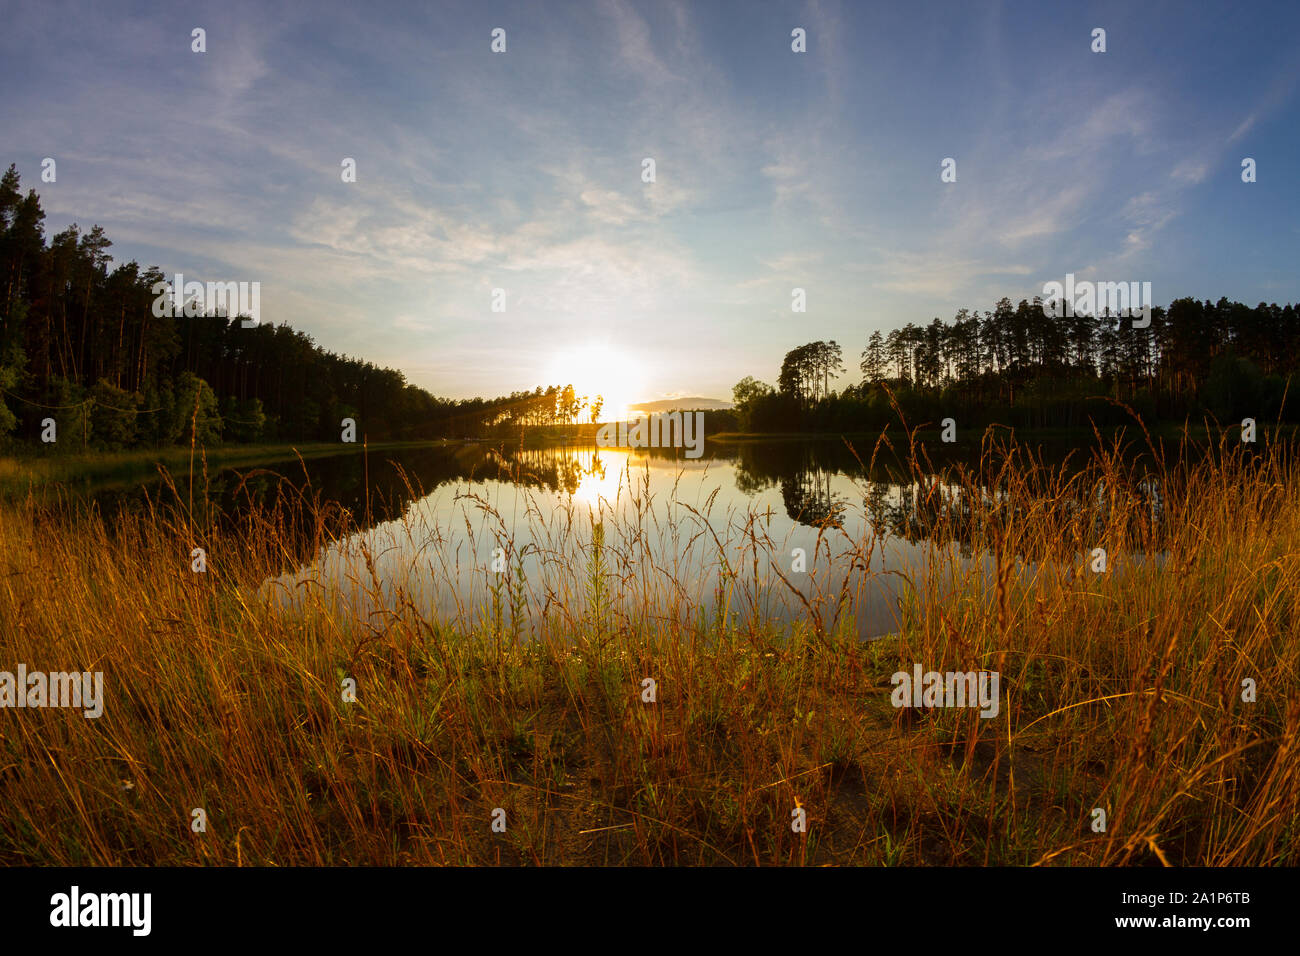 Lake in forest. Shooted with fisheye lens Stock Photo